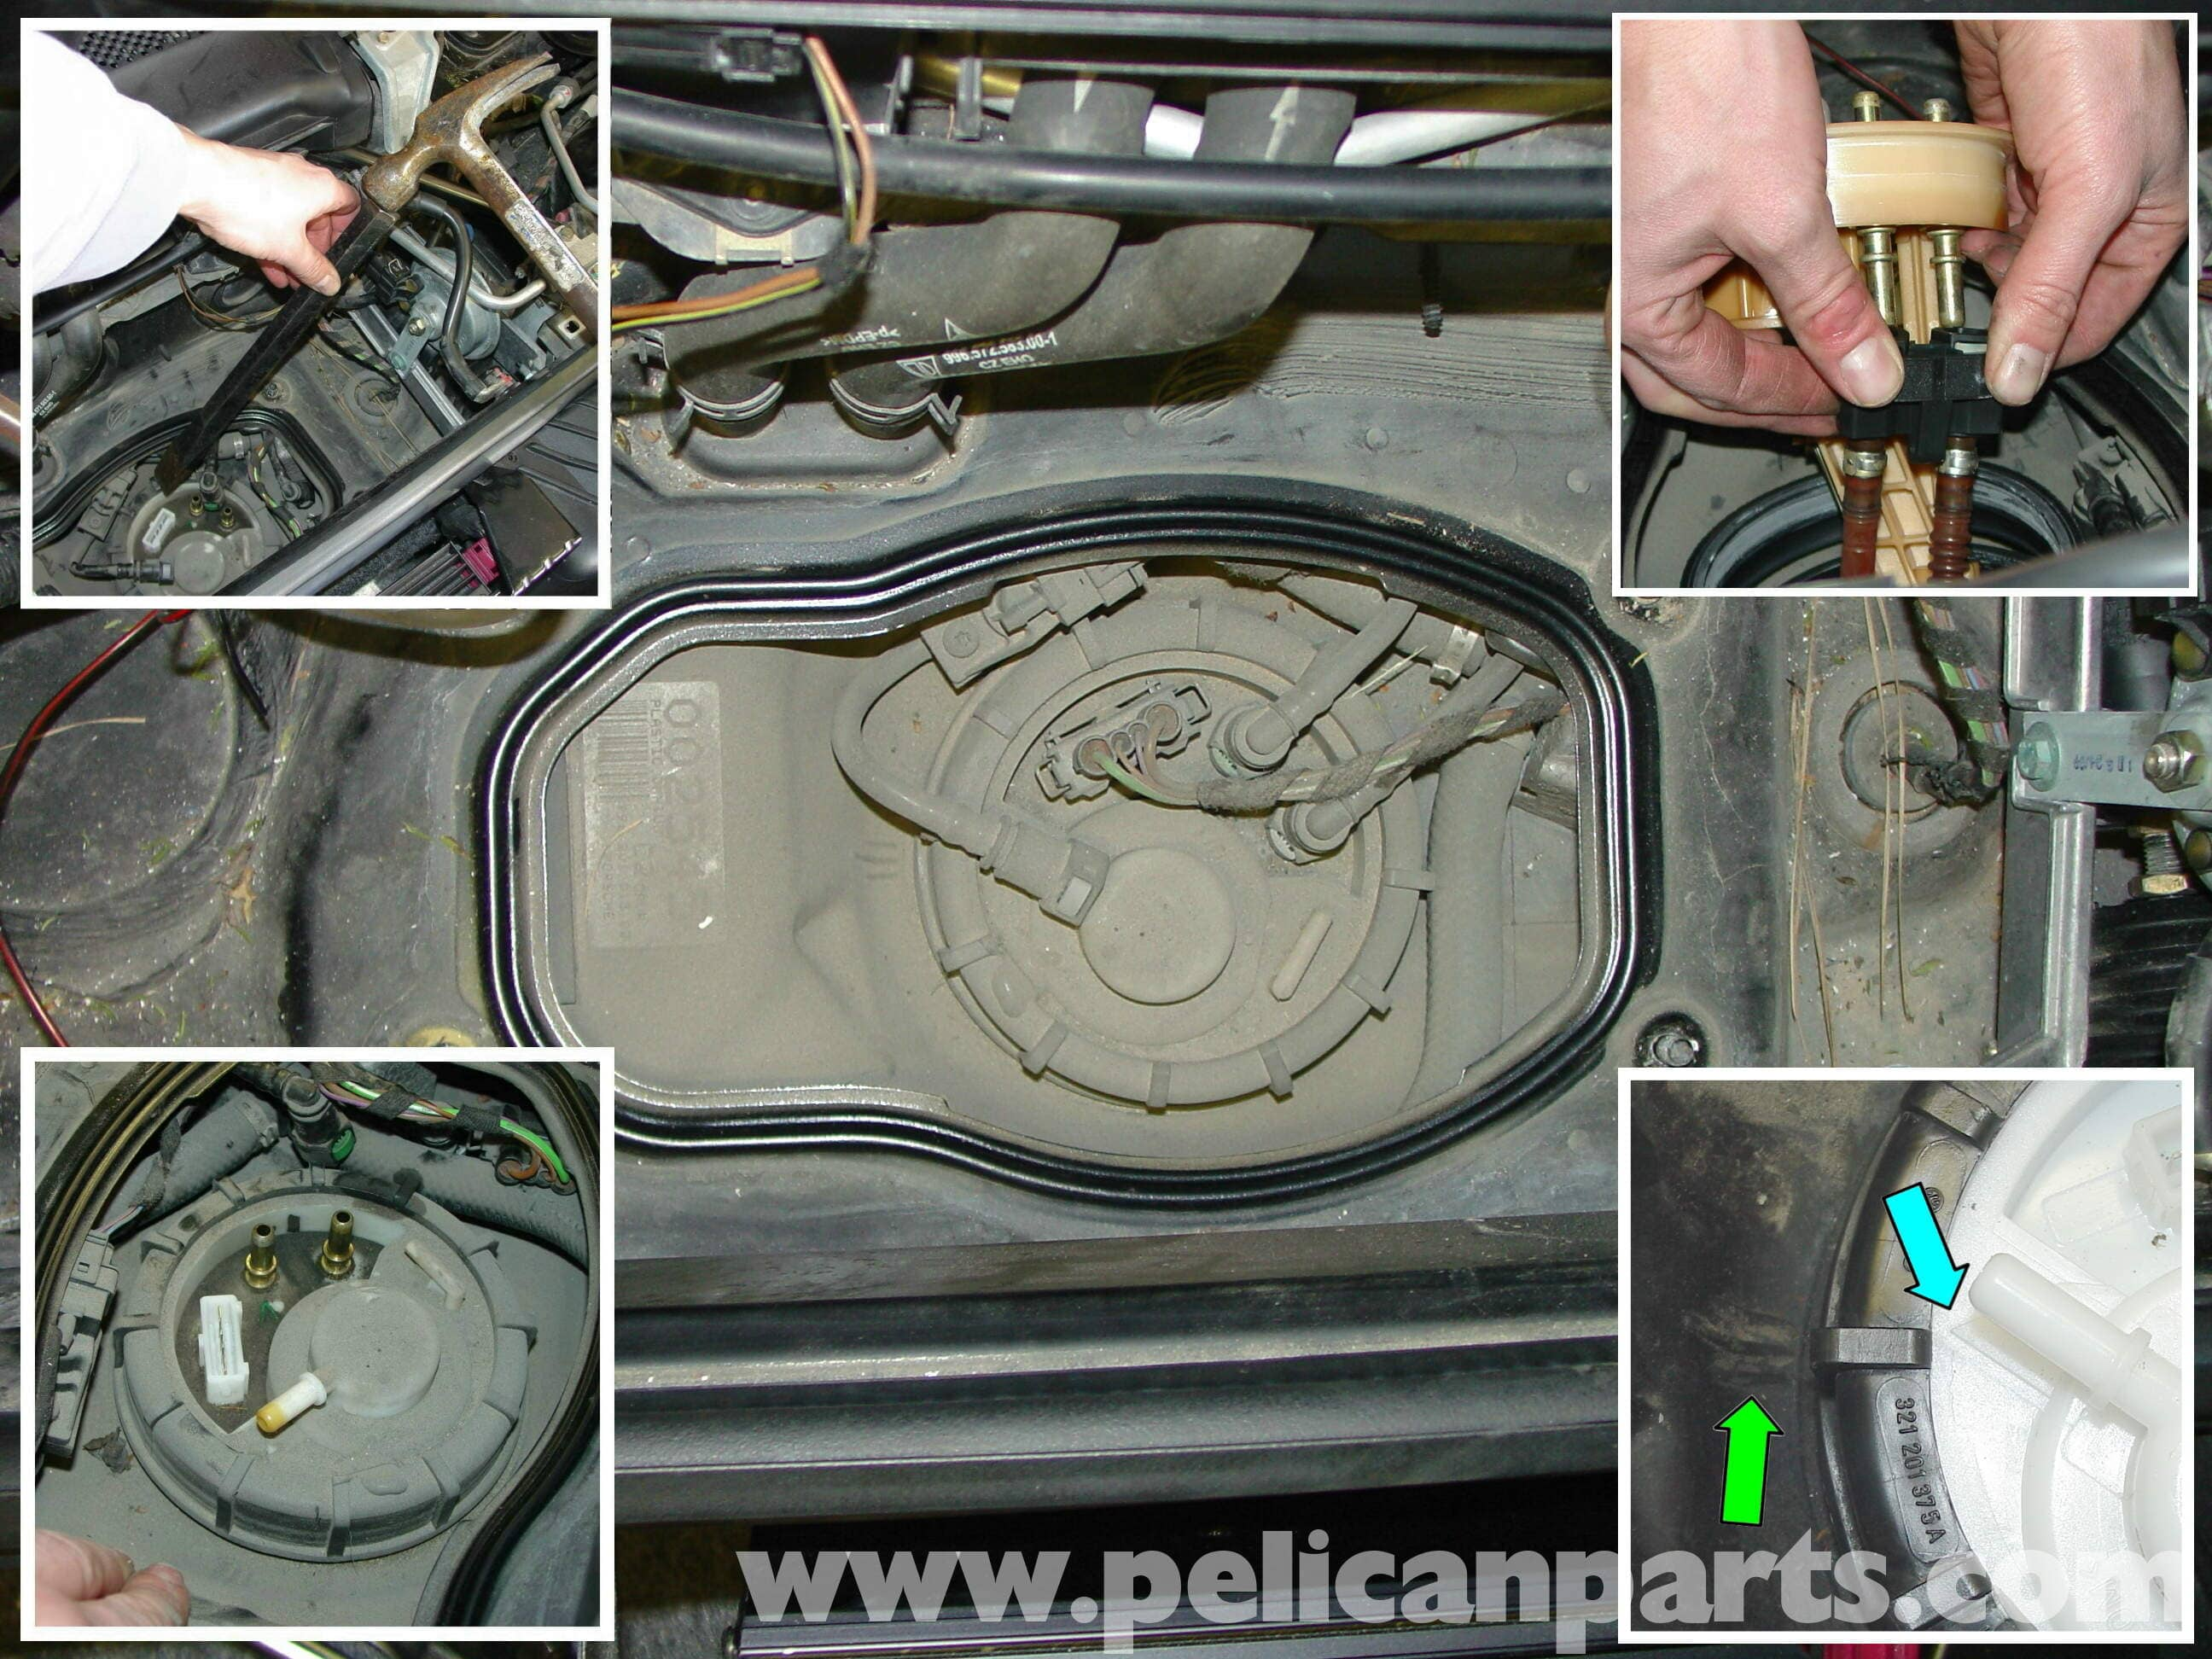 1997 Porsche Boxster Fuse Box Diagram 37 Wiring Images Engine Pic3 Fuel Pump Replacement 986 987 08